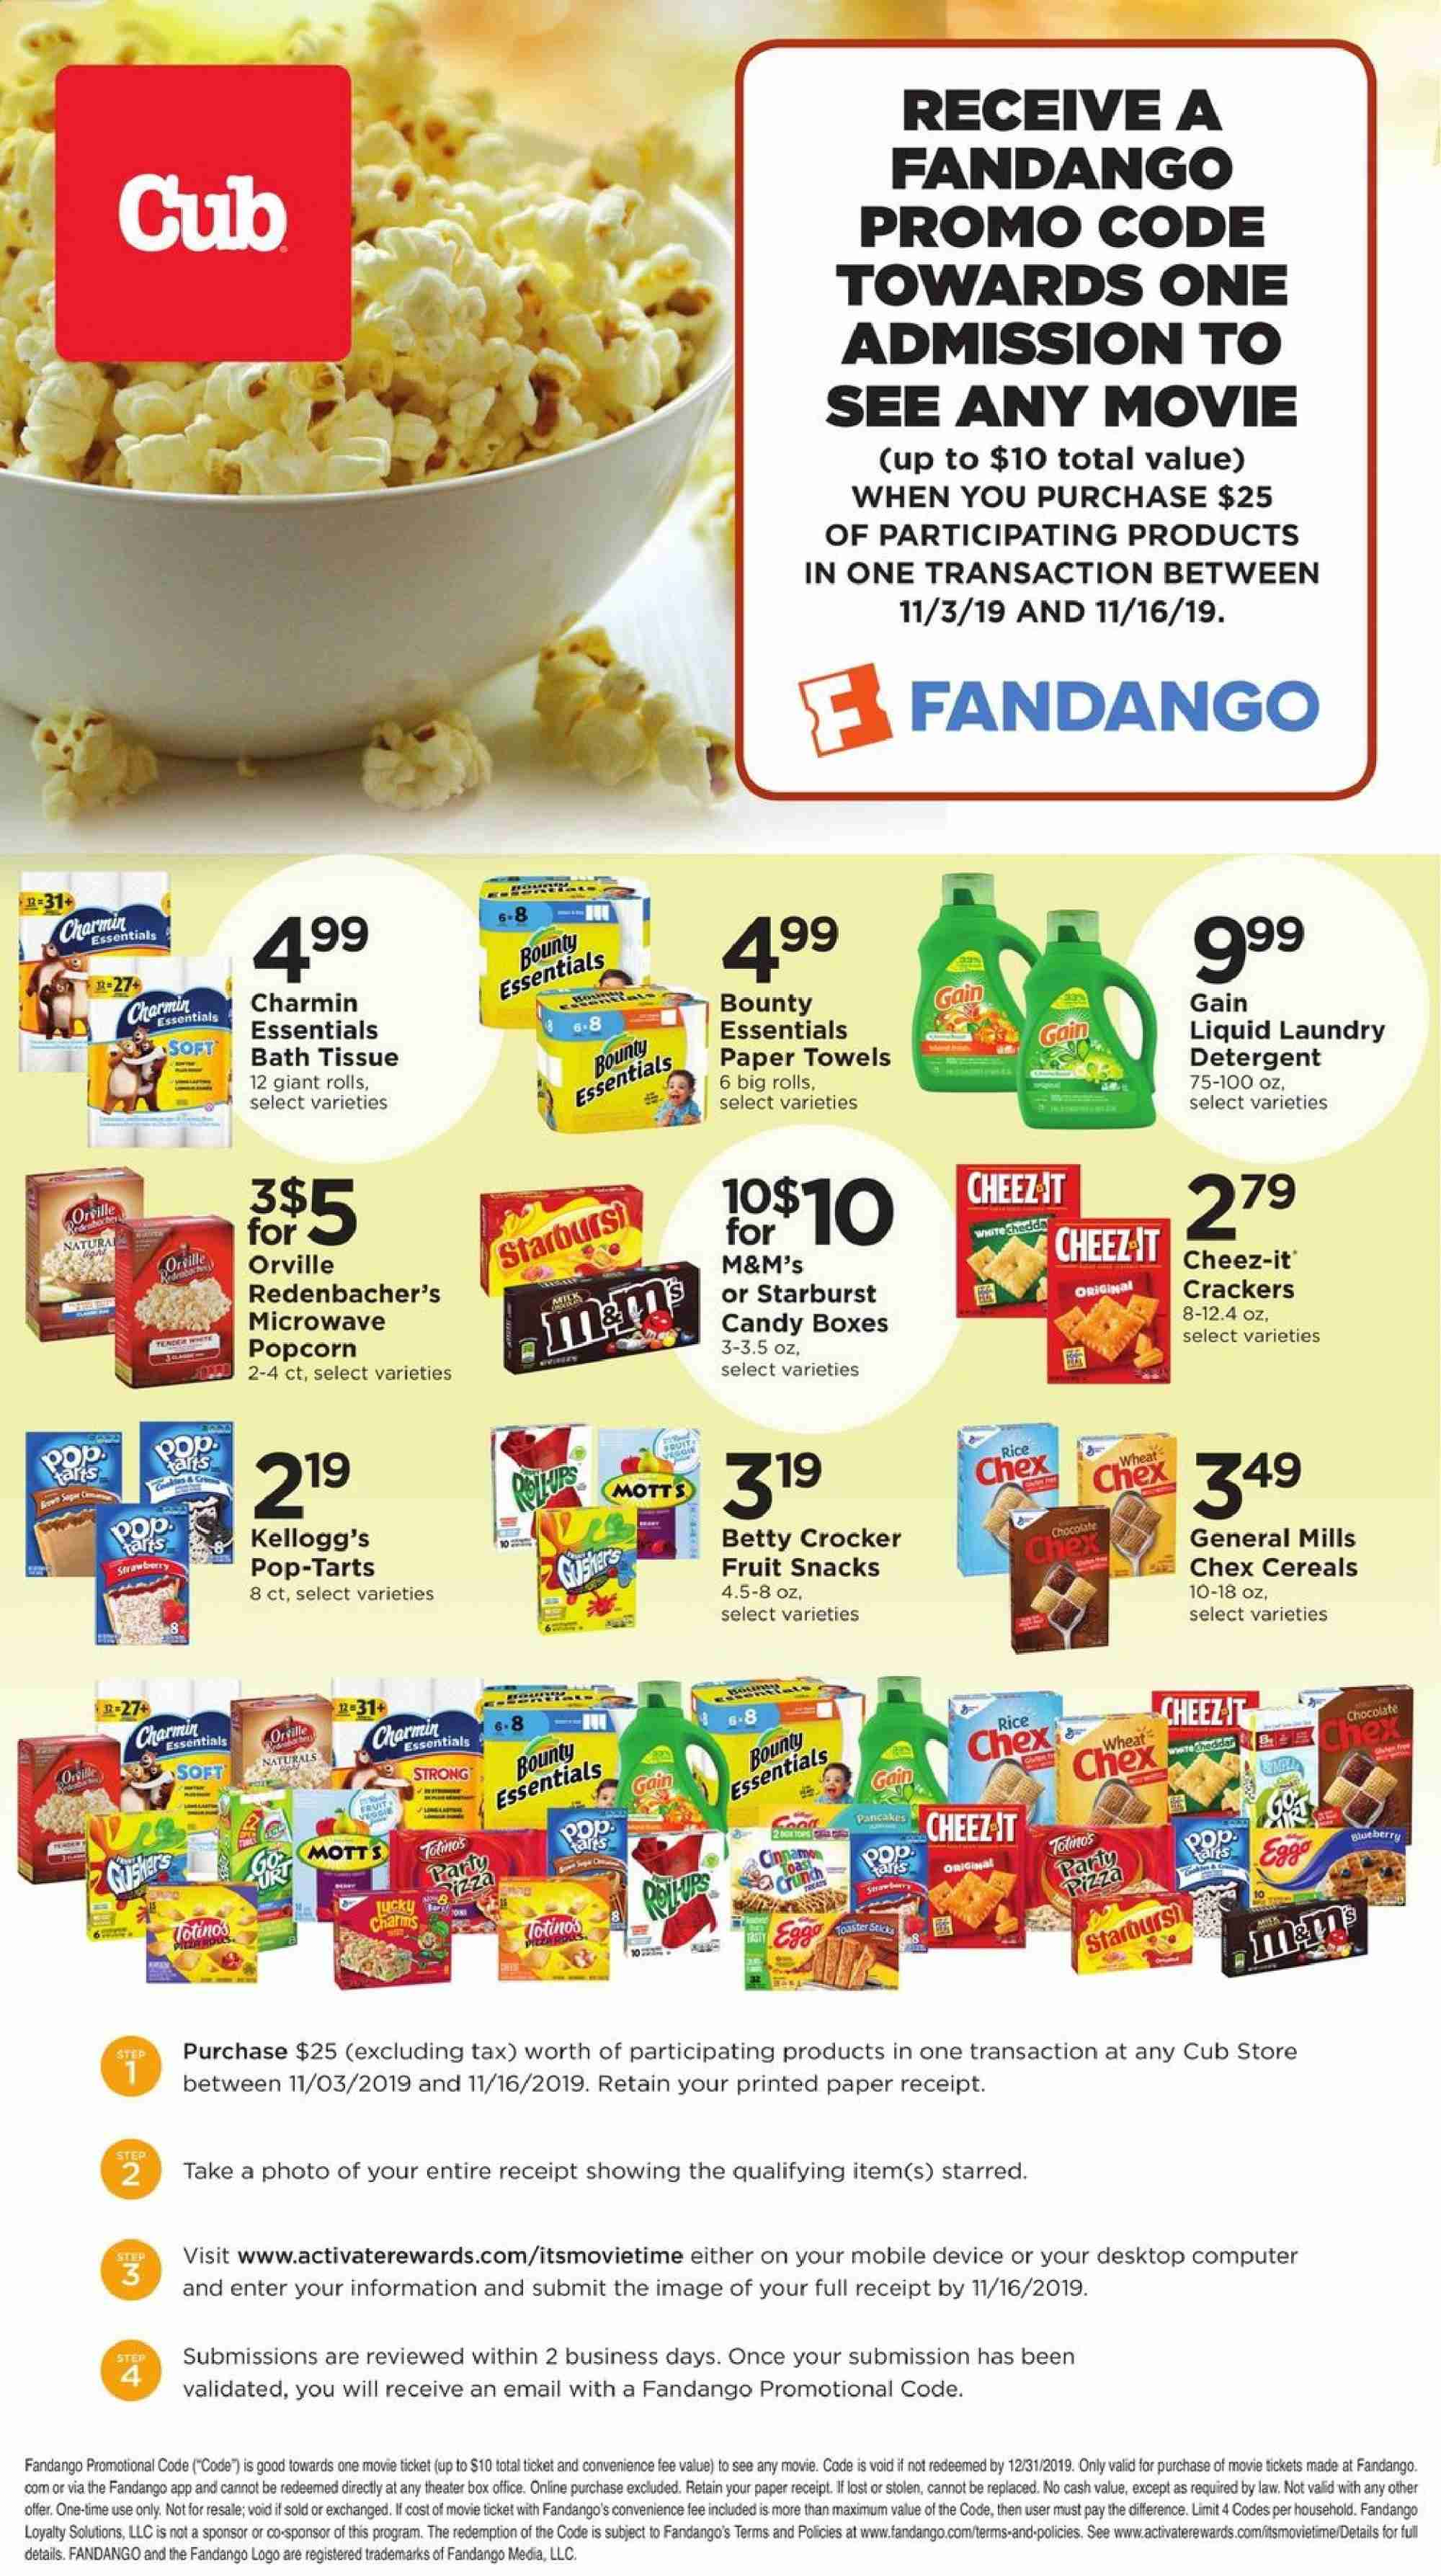 Cub Foods Flyer - 11.03.2019 - 11.16.2019 - Sales products - rolls, toast bread, pancake, pizza, charm, milk, chocolate, candy, Bounty, M&M's, crackers, Kellogg's, Pop-Tarts, fruit snacks, Starburst, popcorn, Cheez-It, cereals, rice, cinnamon, Mott's, essentials, Charmin. Page 1.